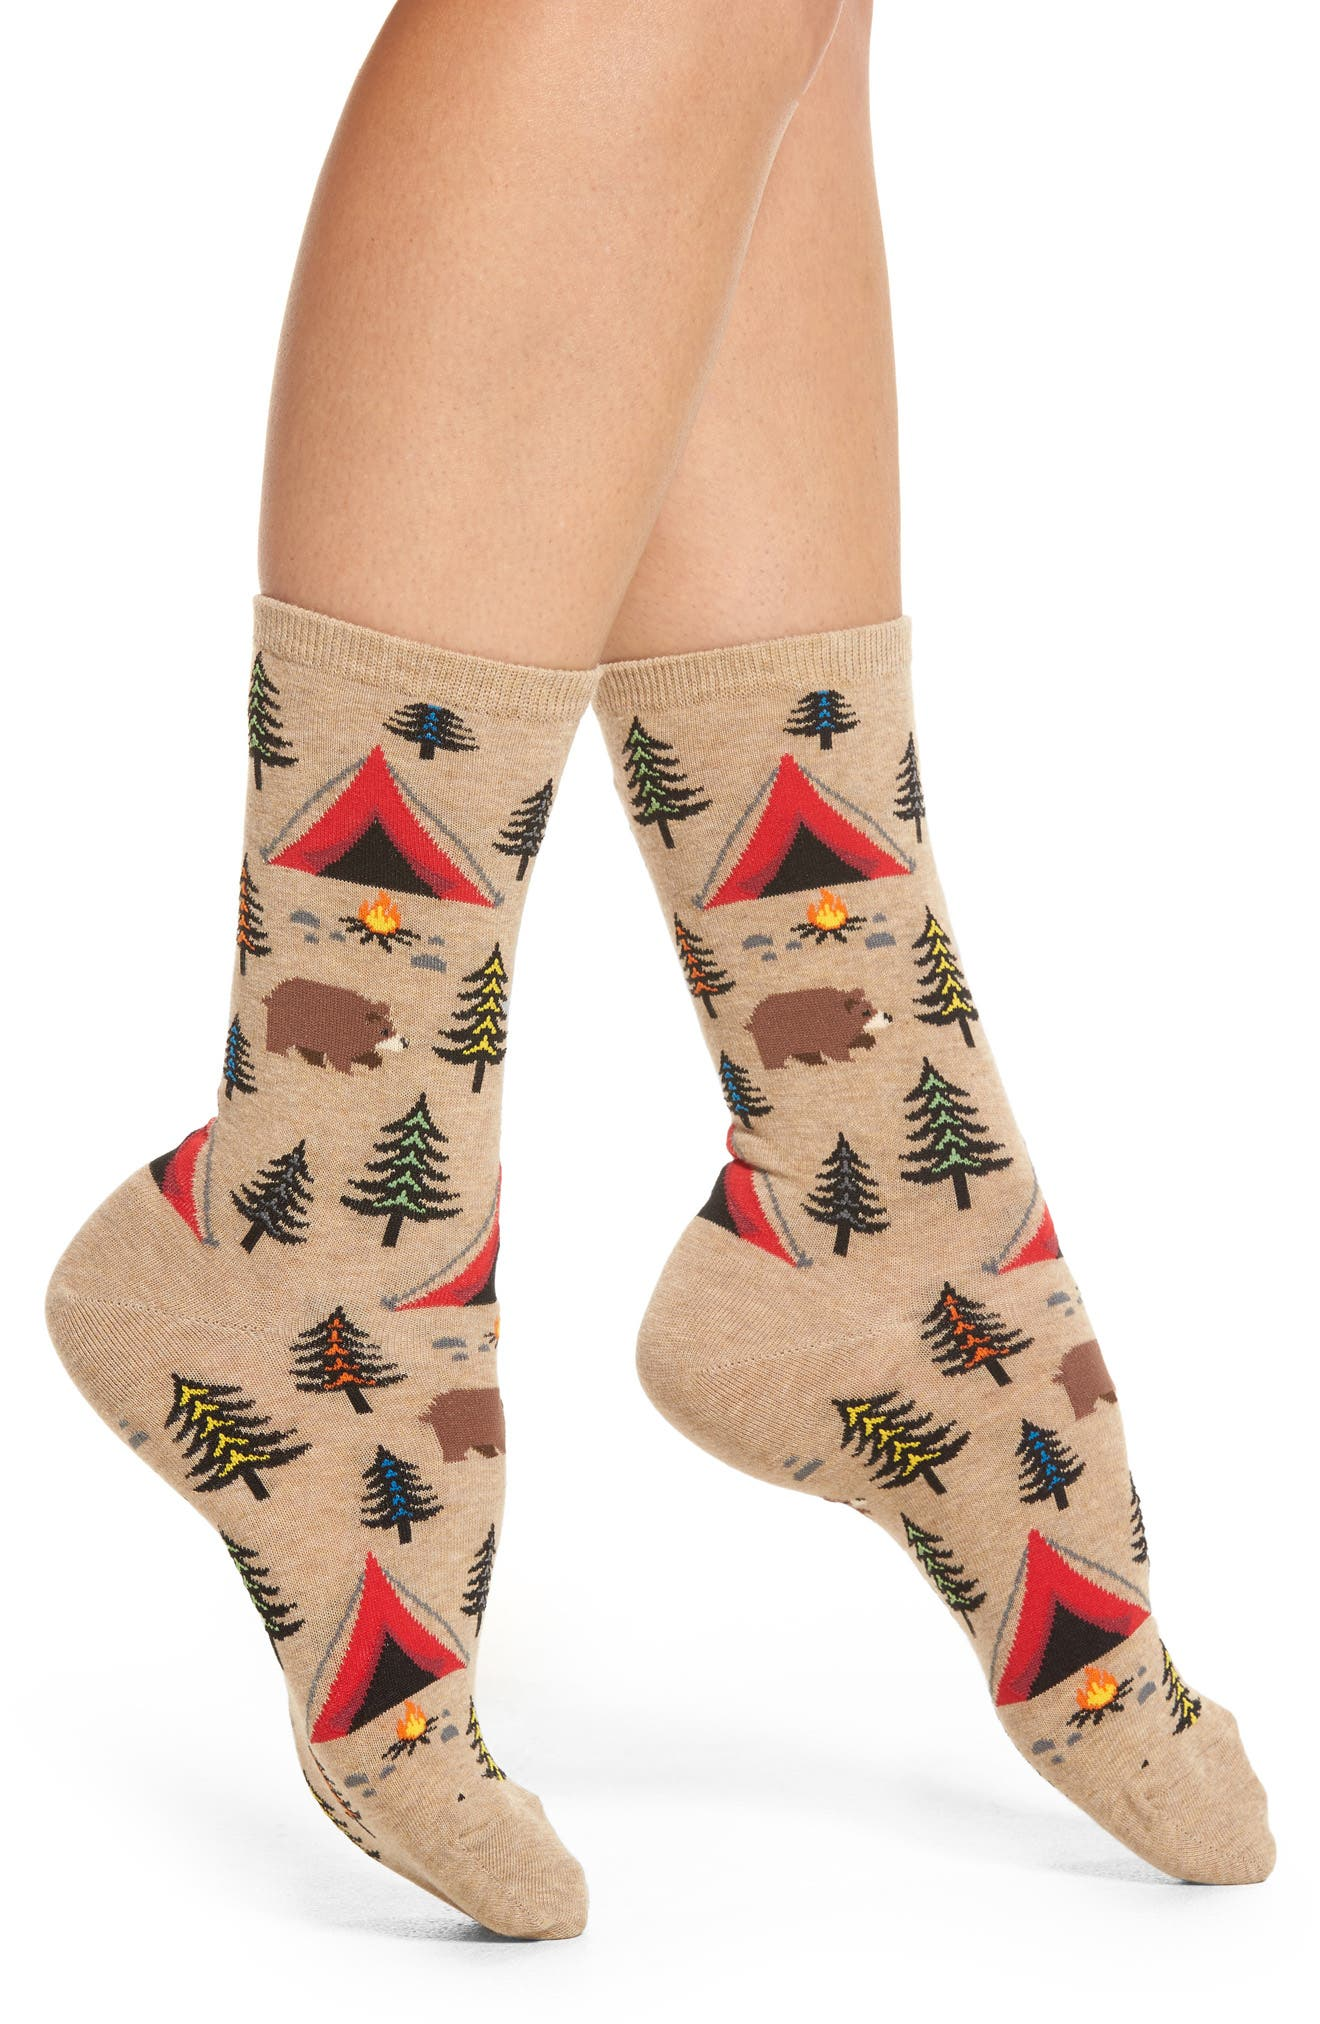 Bear Tent Socks,                             Main thumbnail 1, color,                             Hemp Heather